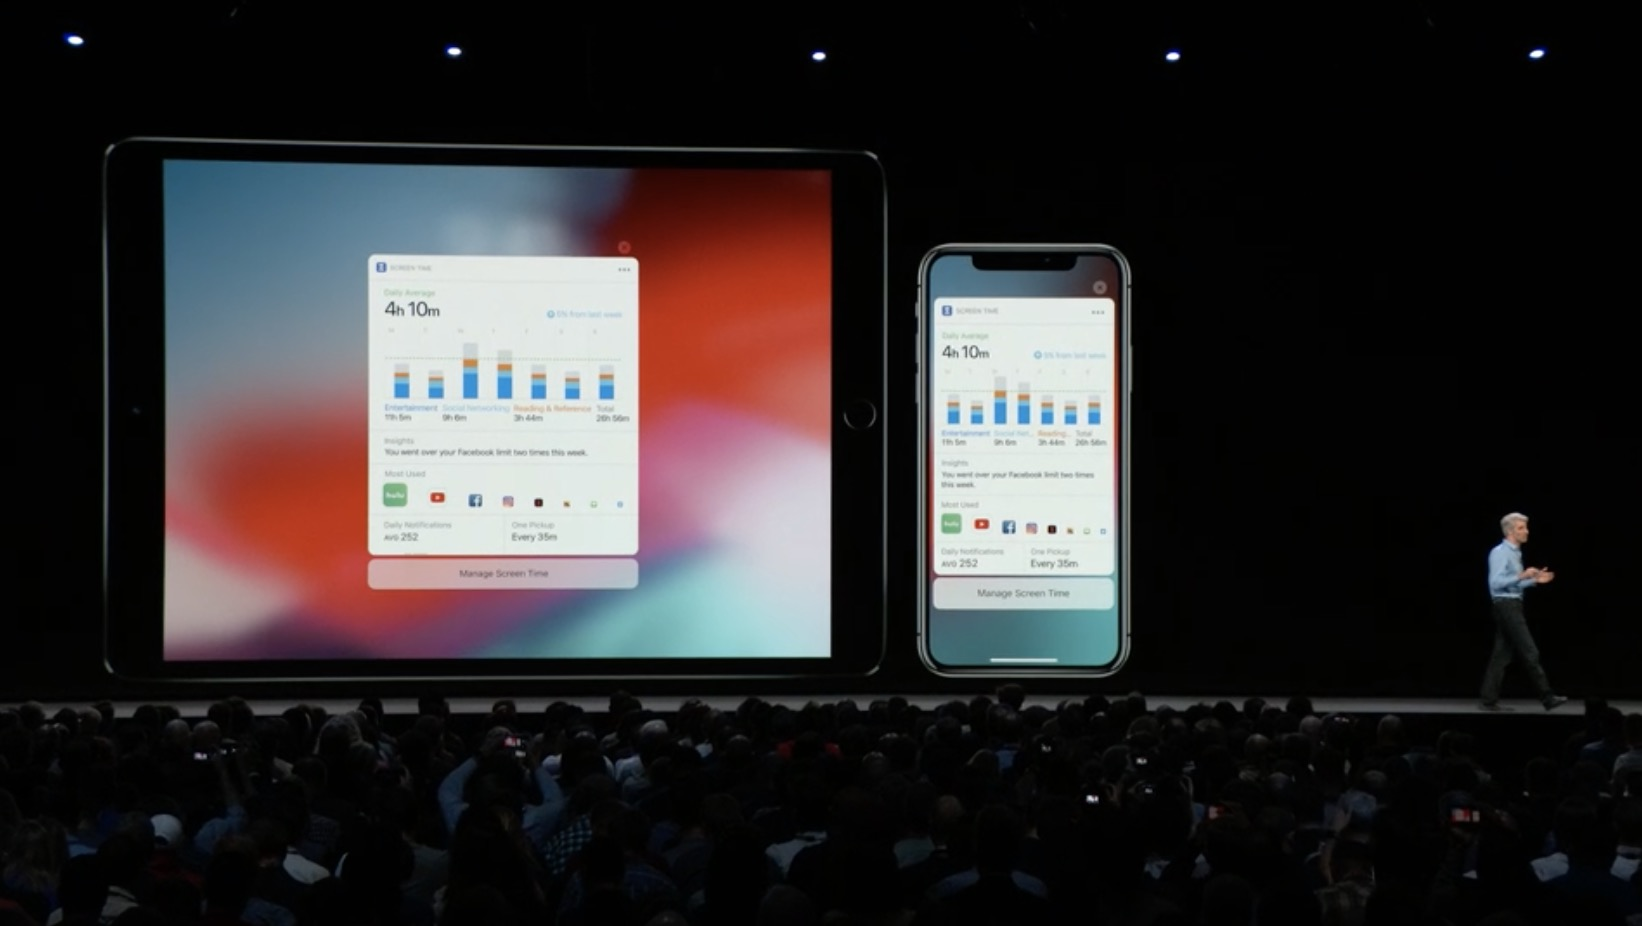 Apple introduces iOS 12, its latest operating system iteration, at developer conference